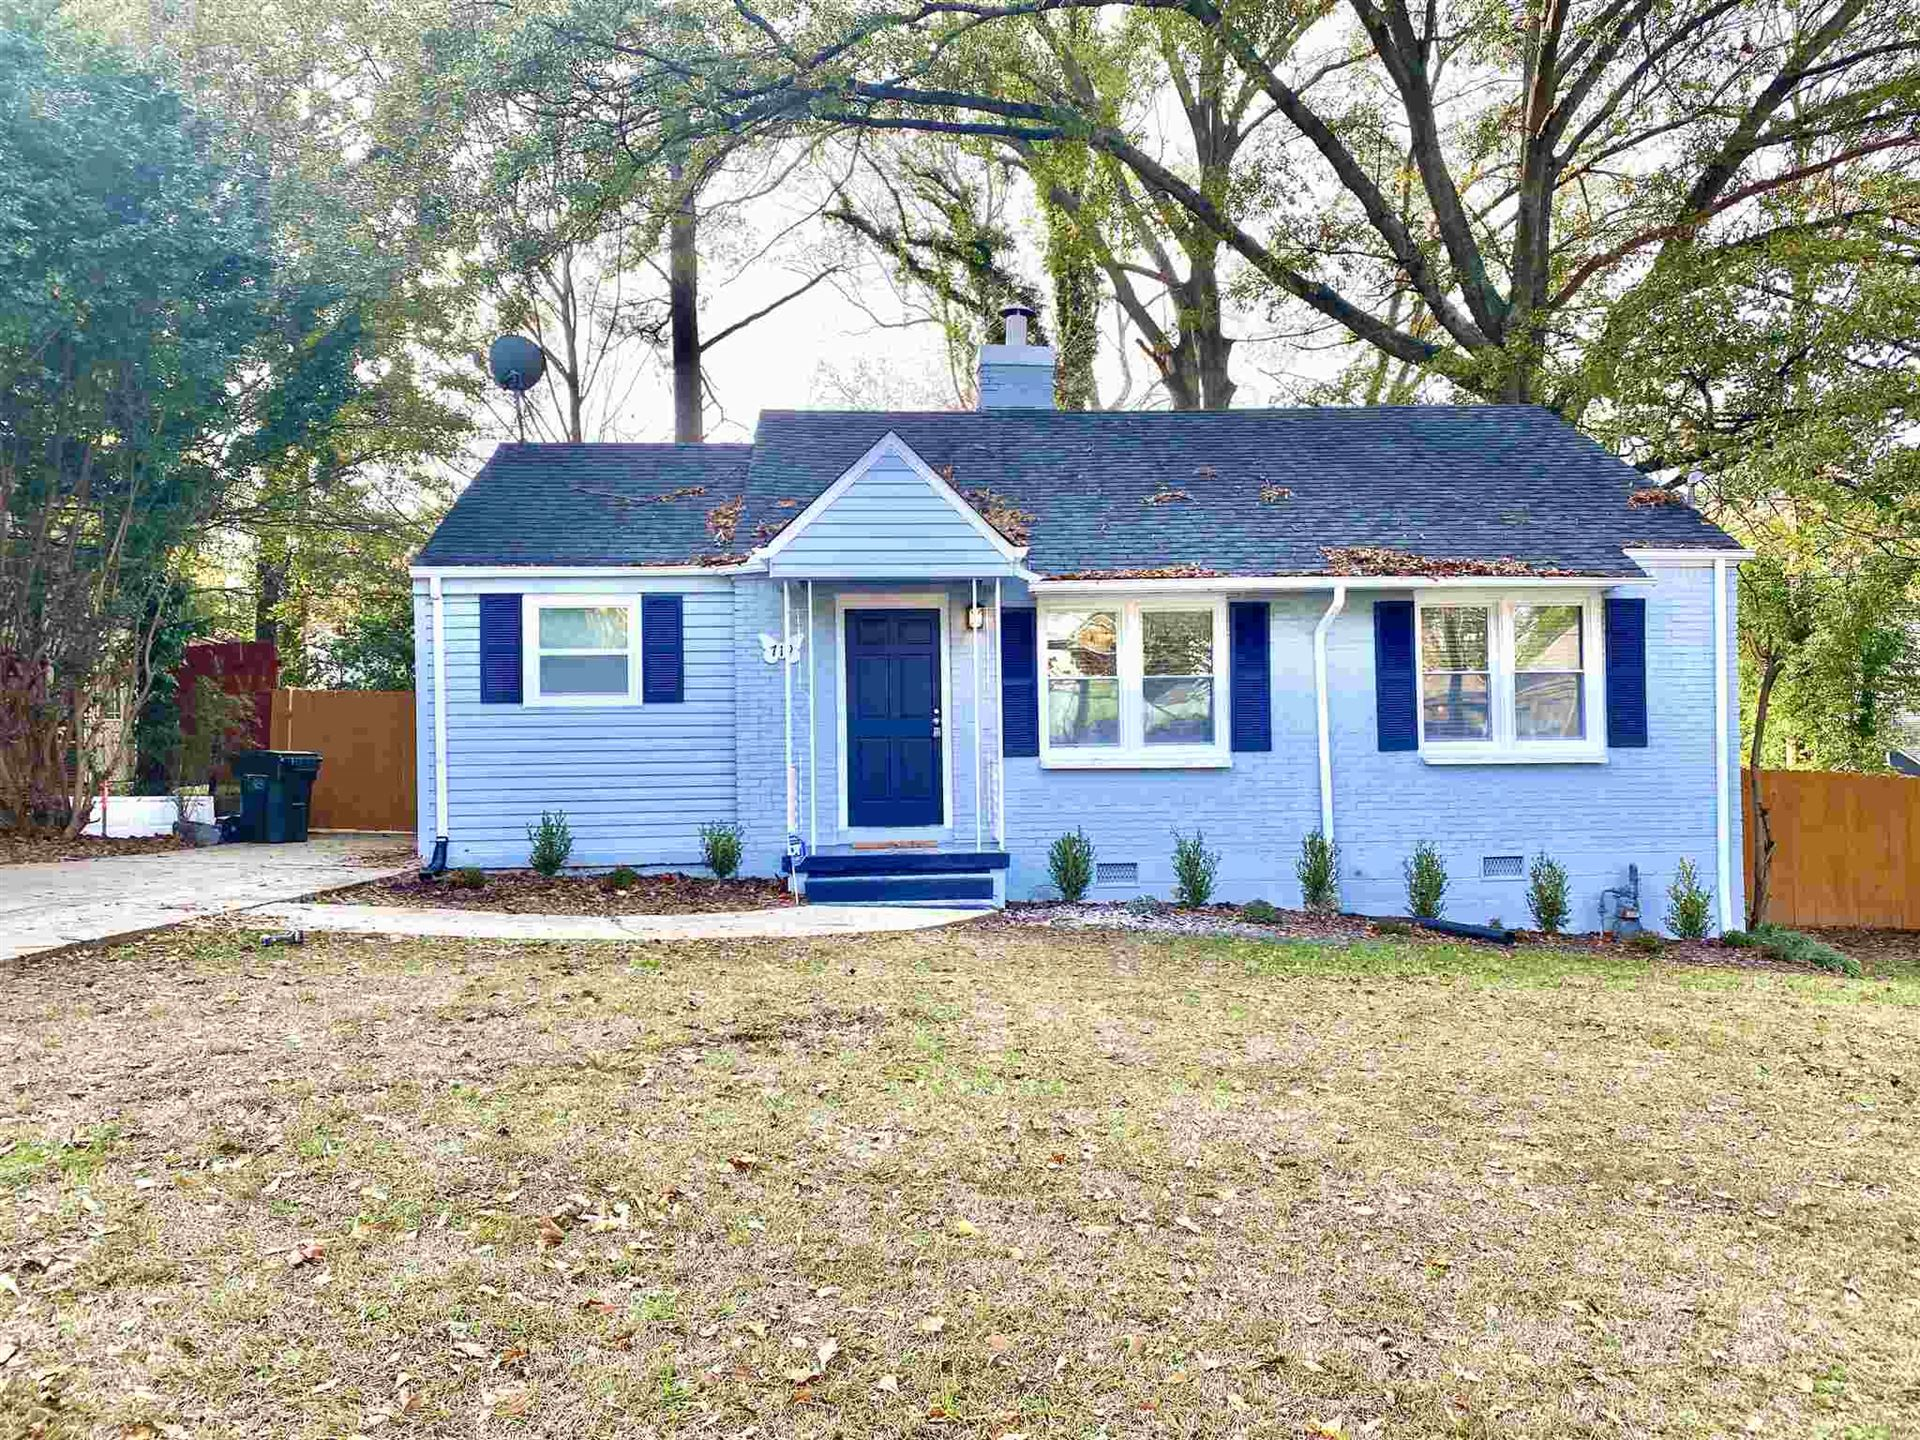 719 campbell circle, Hapeville, GA 30354 - MLS#: 8897758